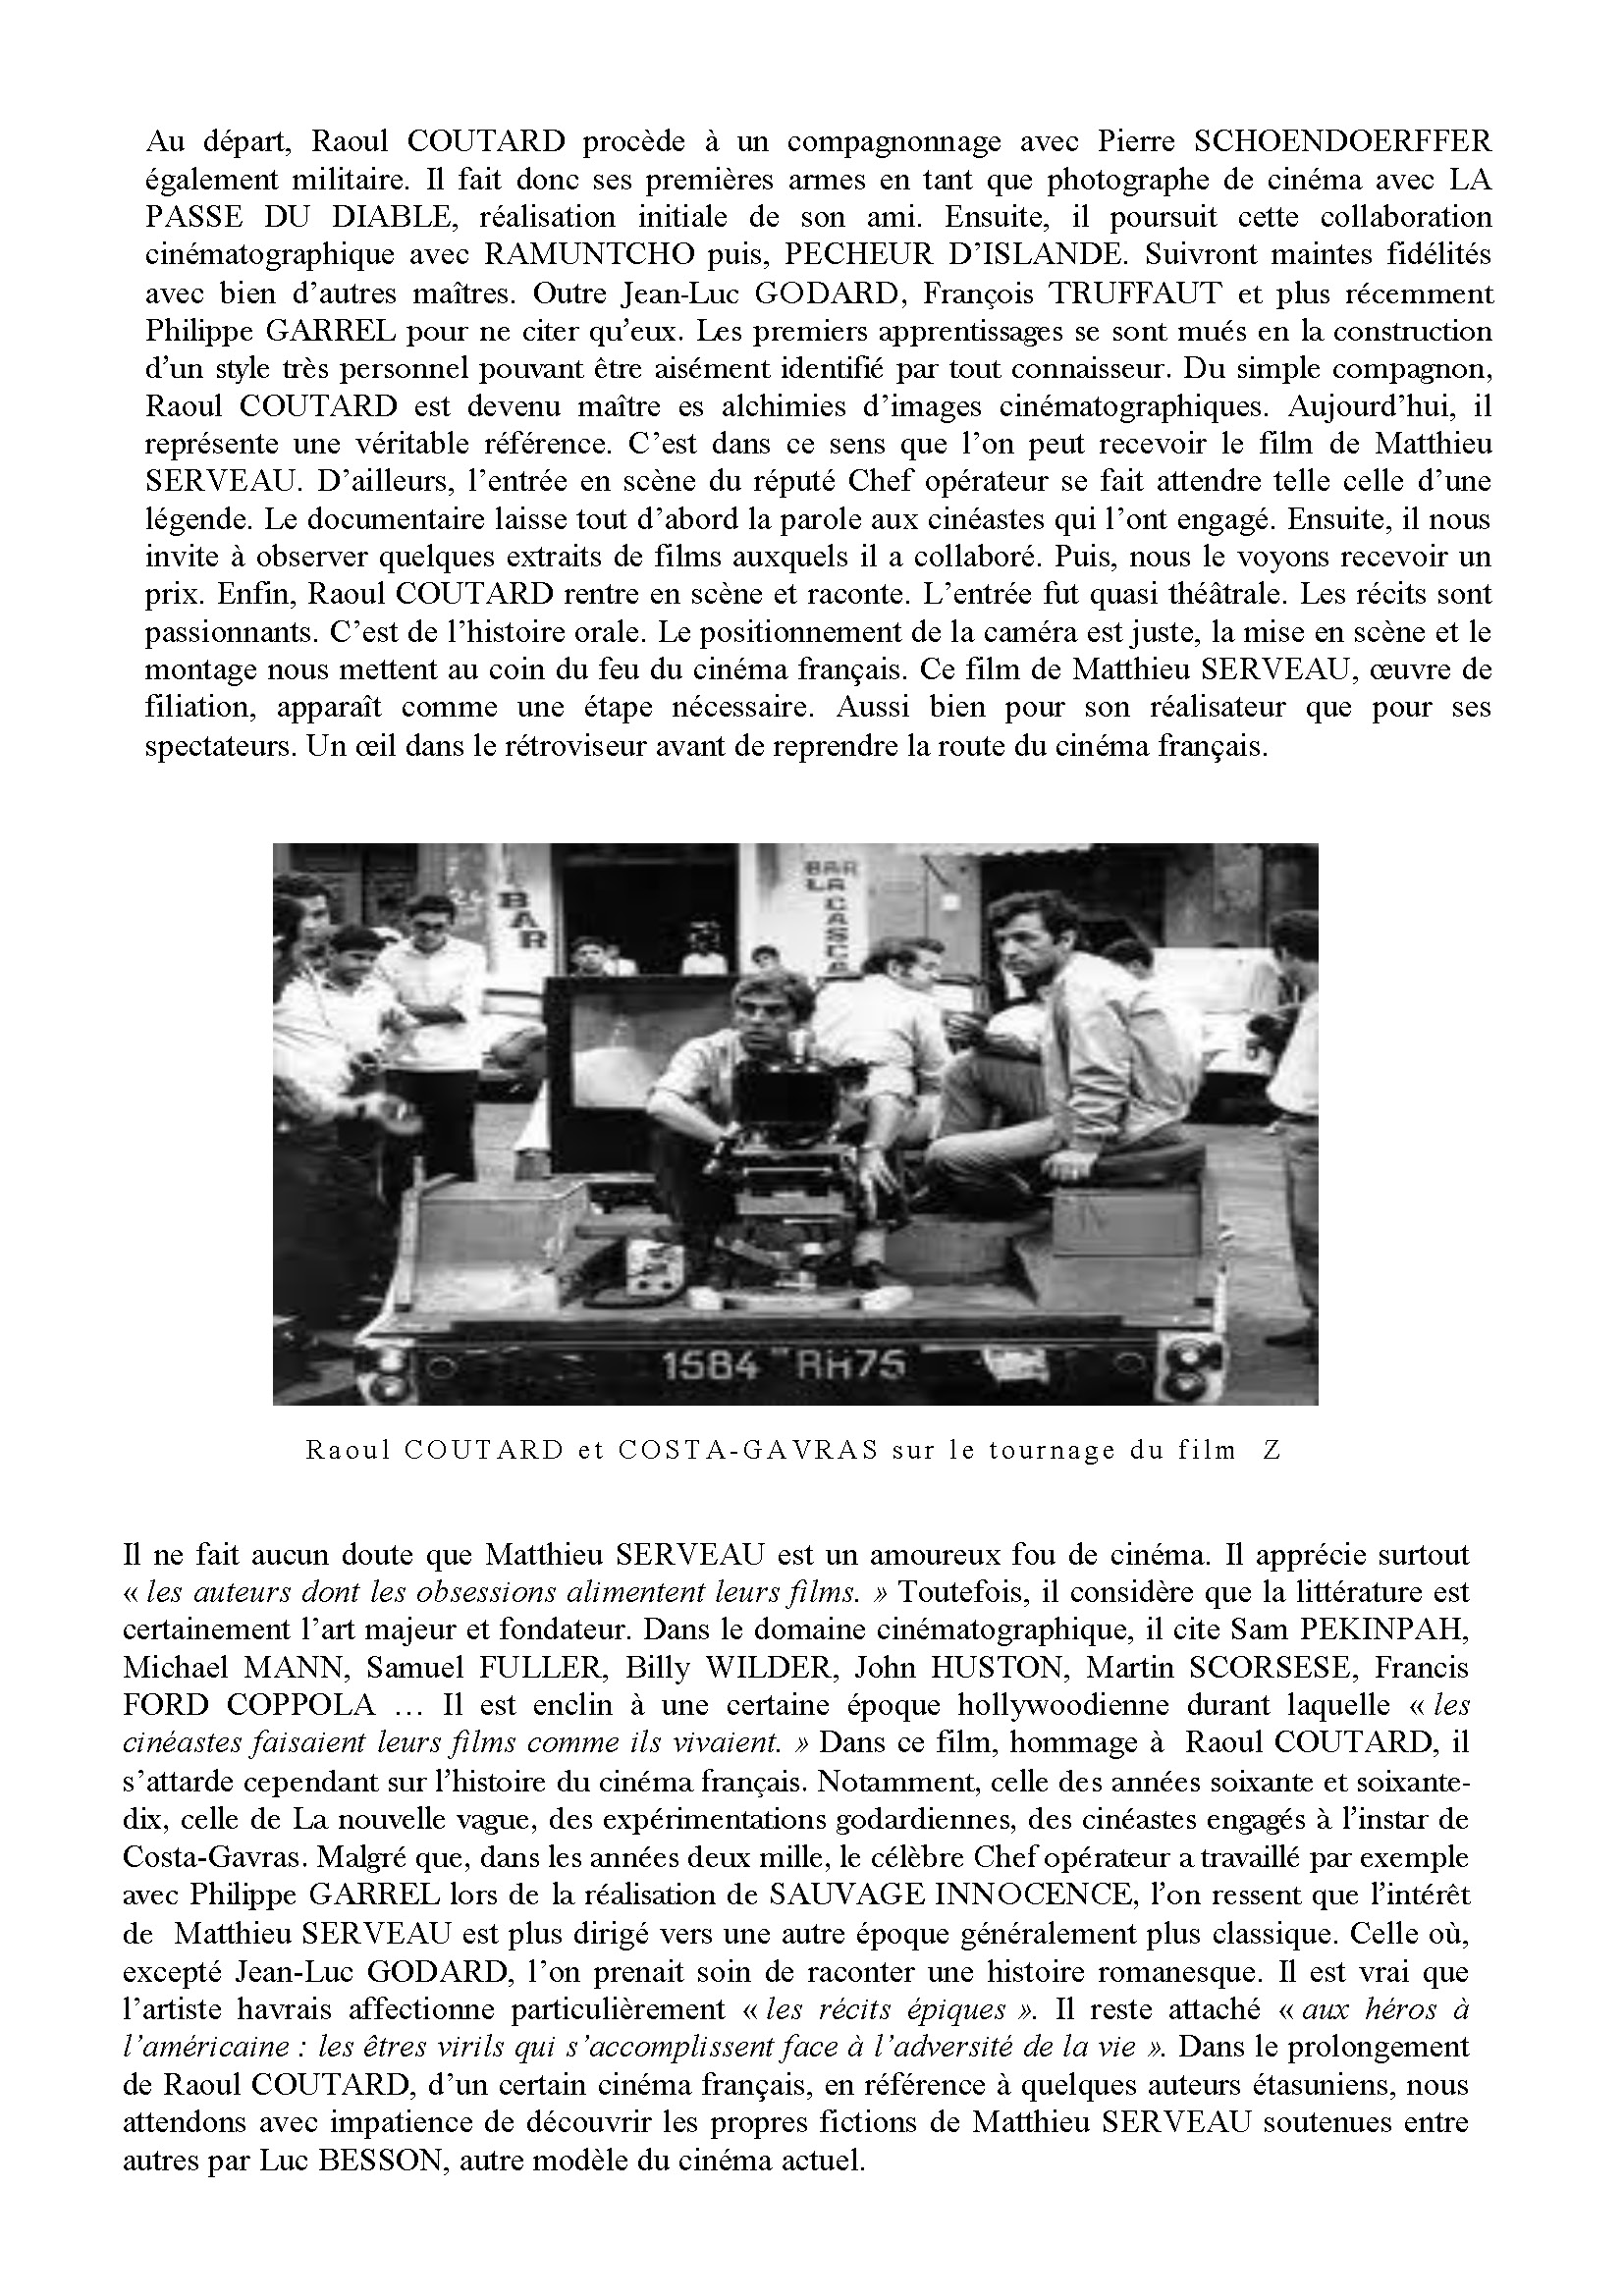 Serveau Matthieu_article 2_Raoul Coutard_Page_2